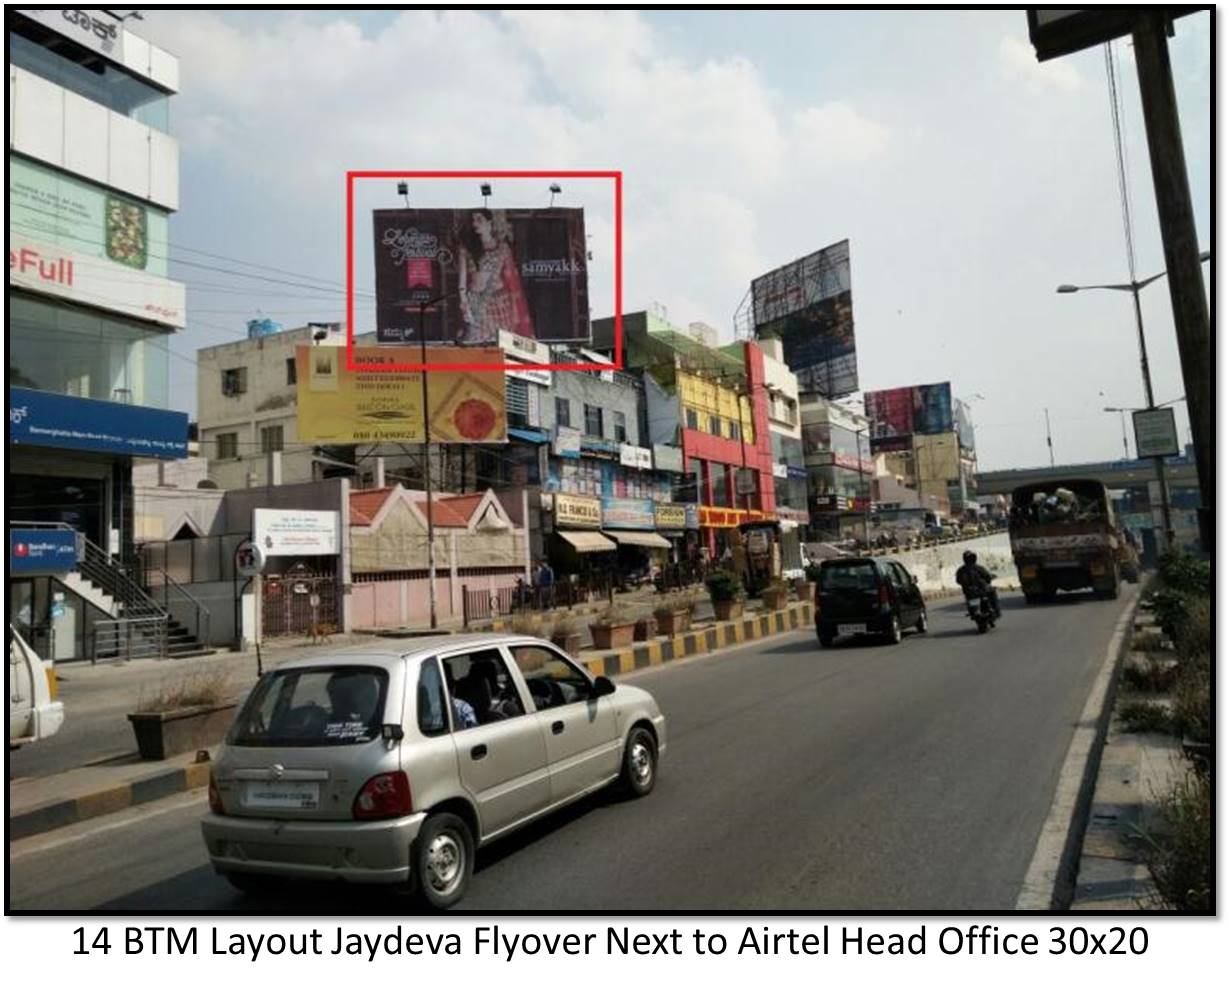 BTM Layout Jaydeva Flyover Next to Airtel Head Office, Bengaluru